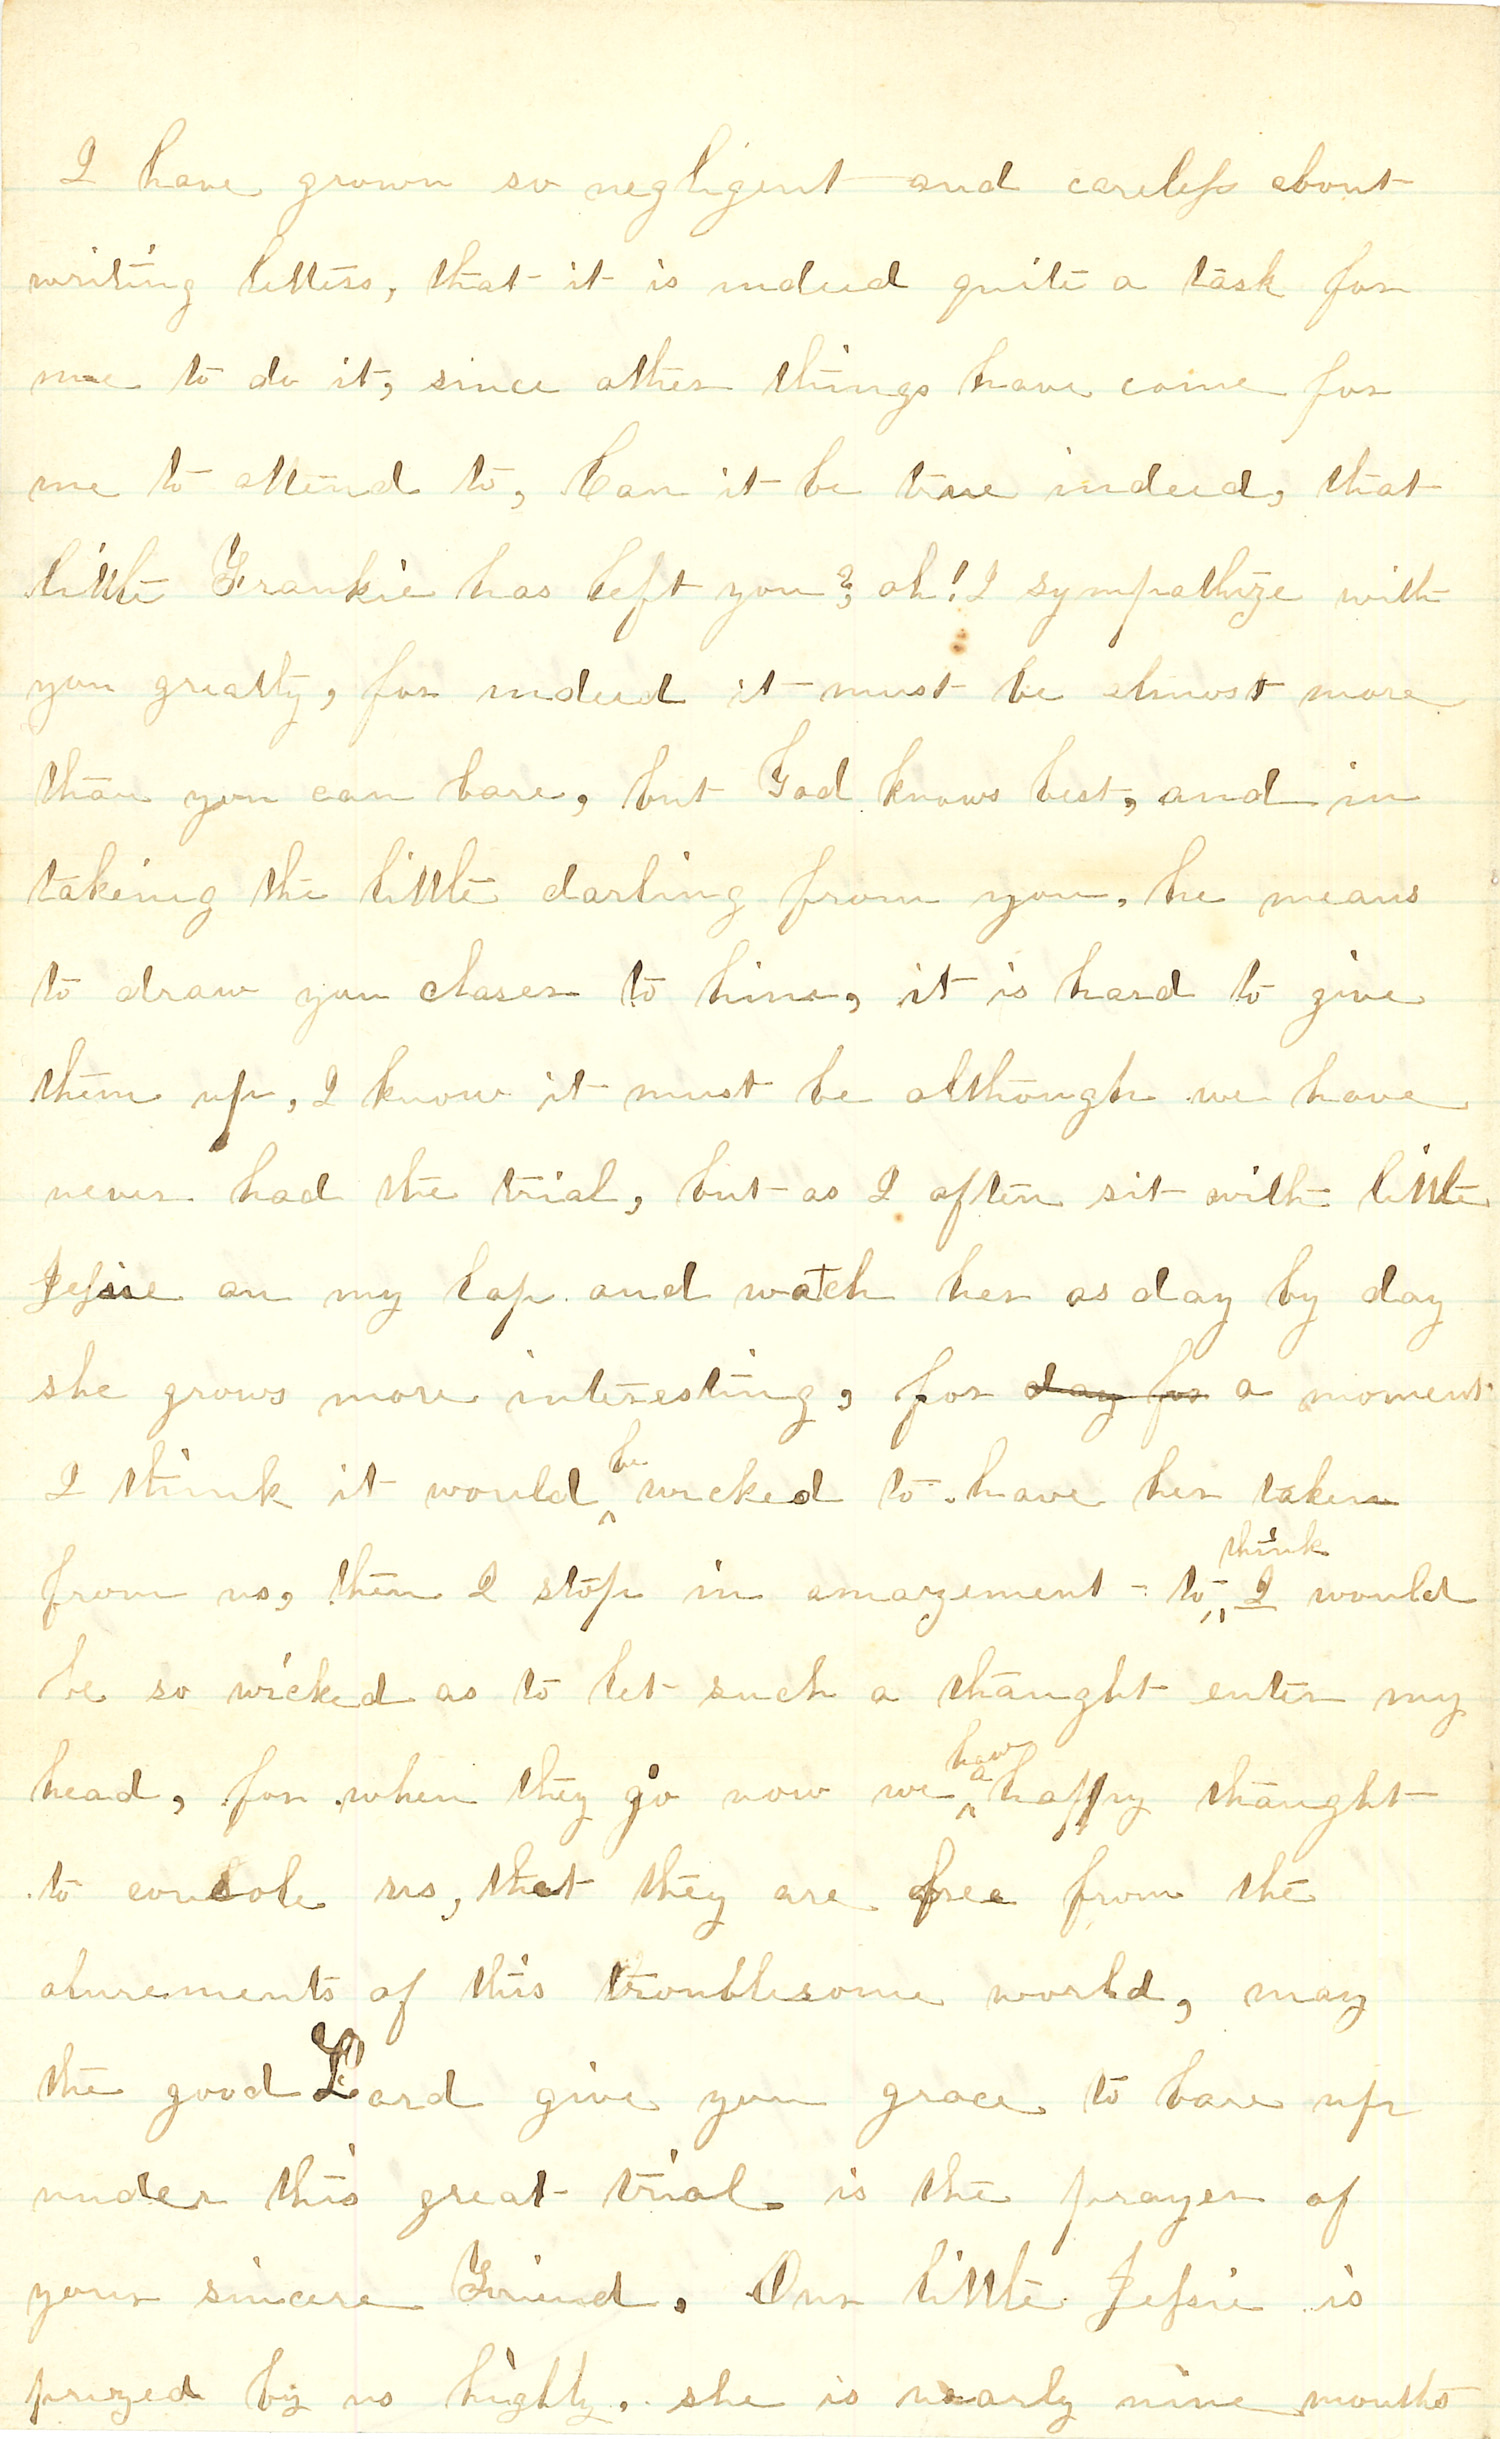 Joseph Culver Letter, December 2, 1863, Page 2